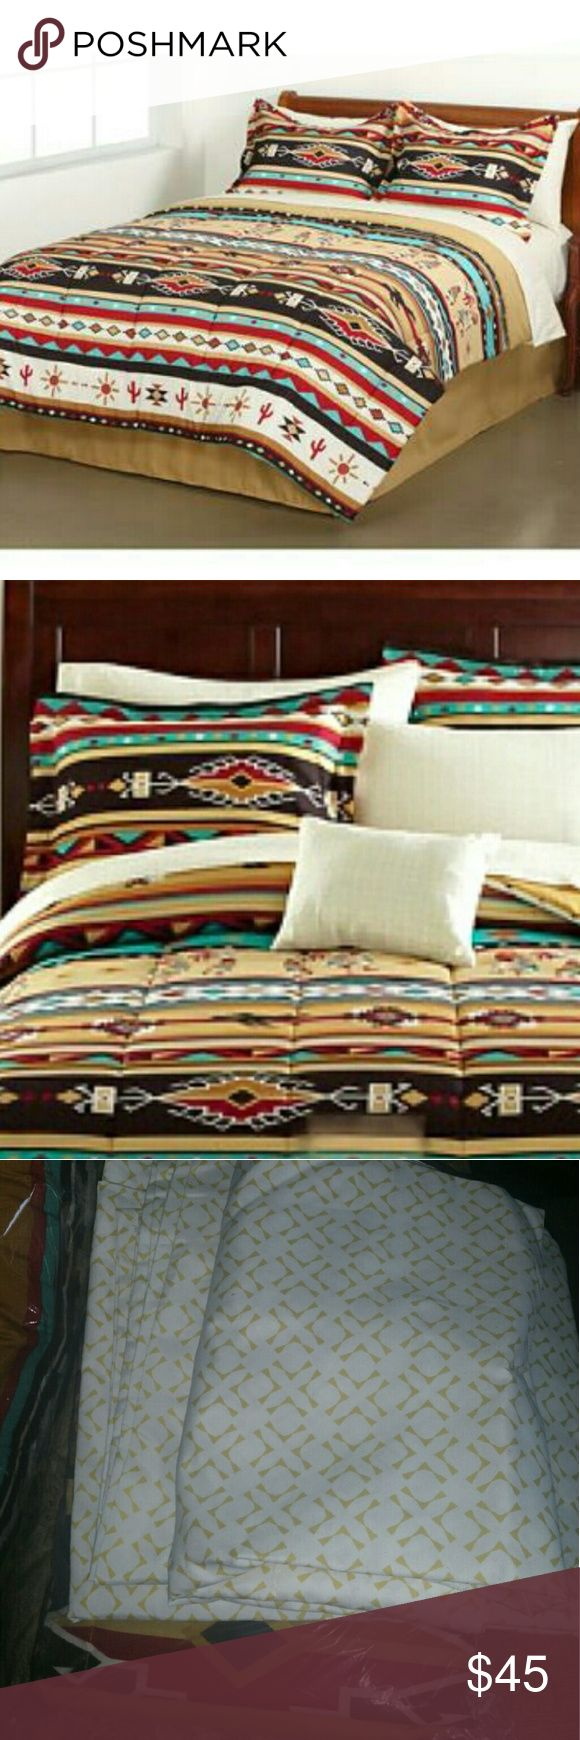 """Southwest Turquoise Tan Red Native American Full. The Mainstays Kokopelli Stripe Bed in a Bag Bedding Set features classic geometric patterns and kokopelli silhouettes. Tans, reds and turquoise create a distinctly southwestern feel. The soft and cozy microfiber comforter has a tan reverse and comes with coordinating shams, a bed skirt and a complete sheet set. It's machine washable for easy care.Full set includes: comforter (76"""" x 86""""), flat sheet (81"""" x 96""""), 2 standard pillowcases (20"""" x…"""